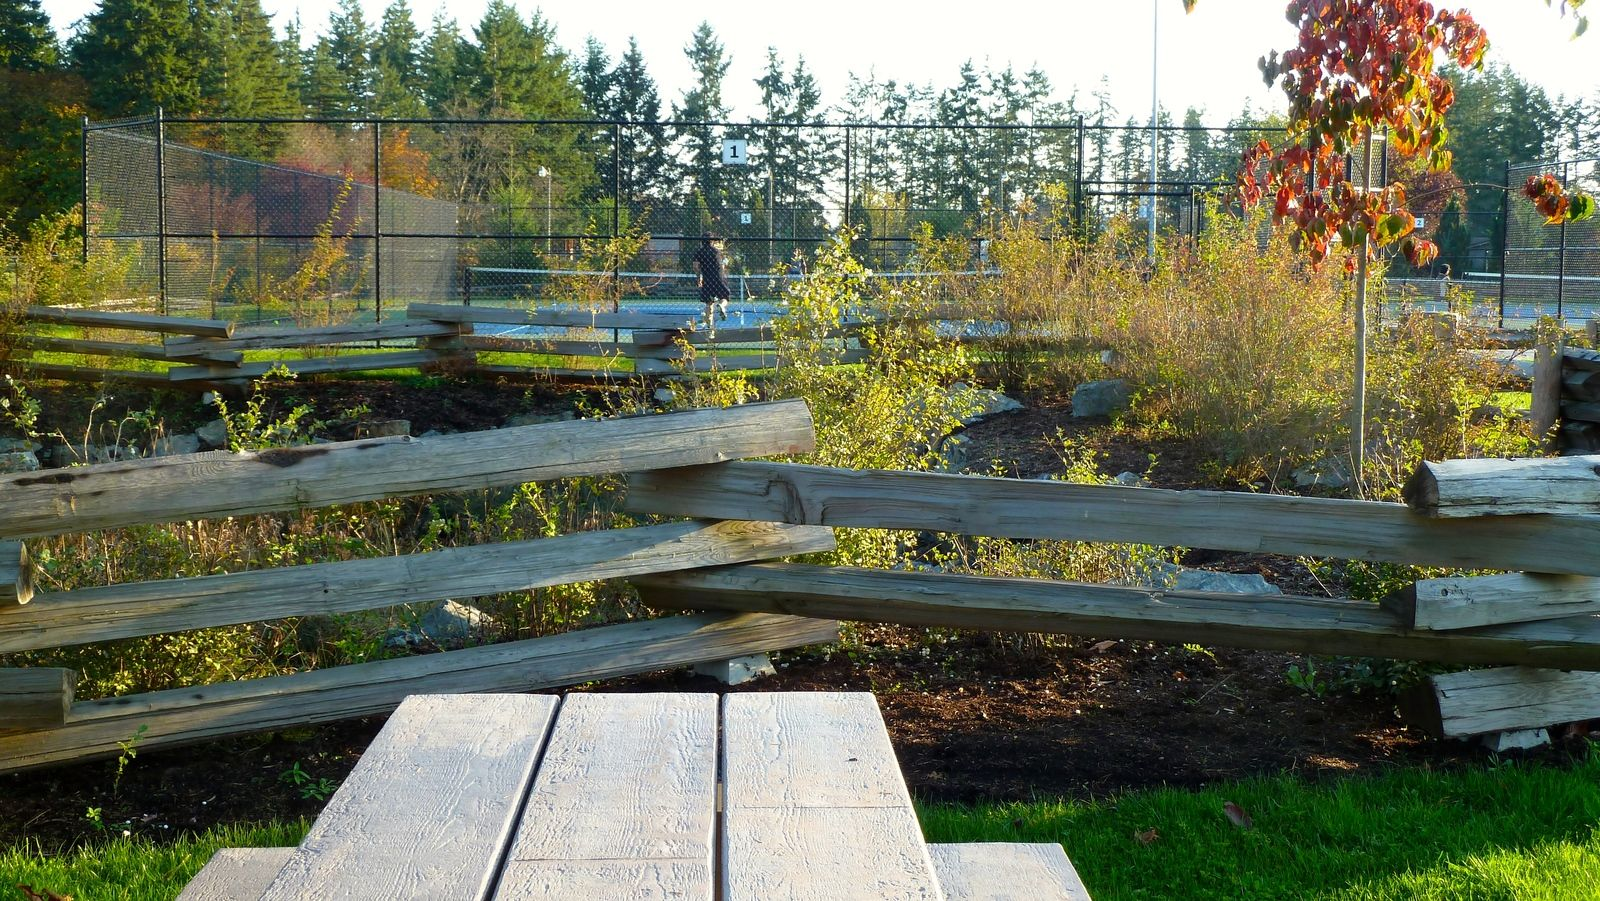 tennis-tourist--centennial-tennis-courts-central-saanich-vancouver-island-picnic-table-and-fence-teri-church